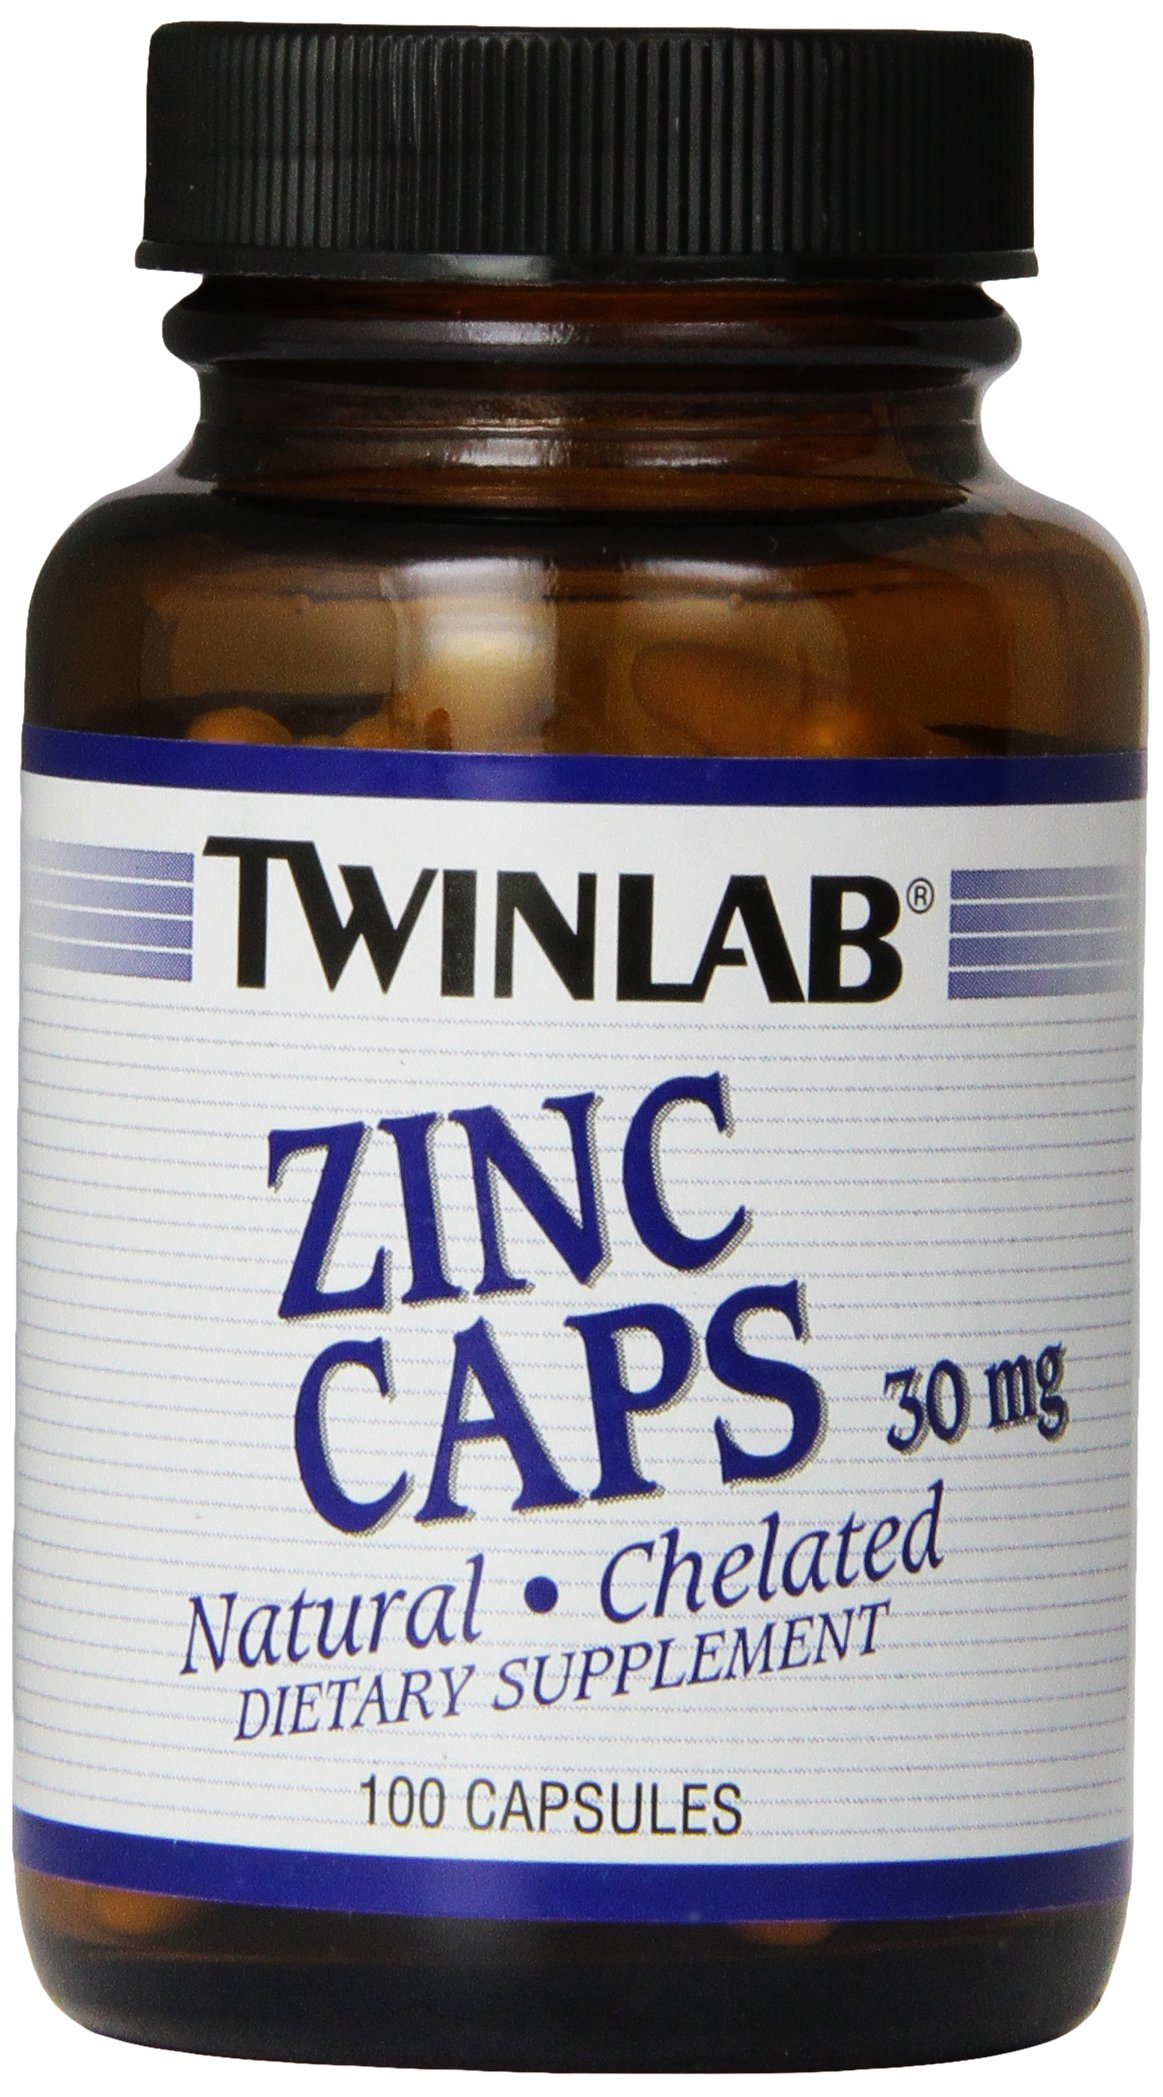 Twinlab Zinc Caps 30mg, 100 Capsules (Pack of 6)